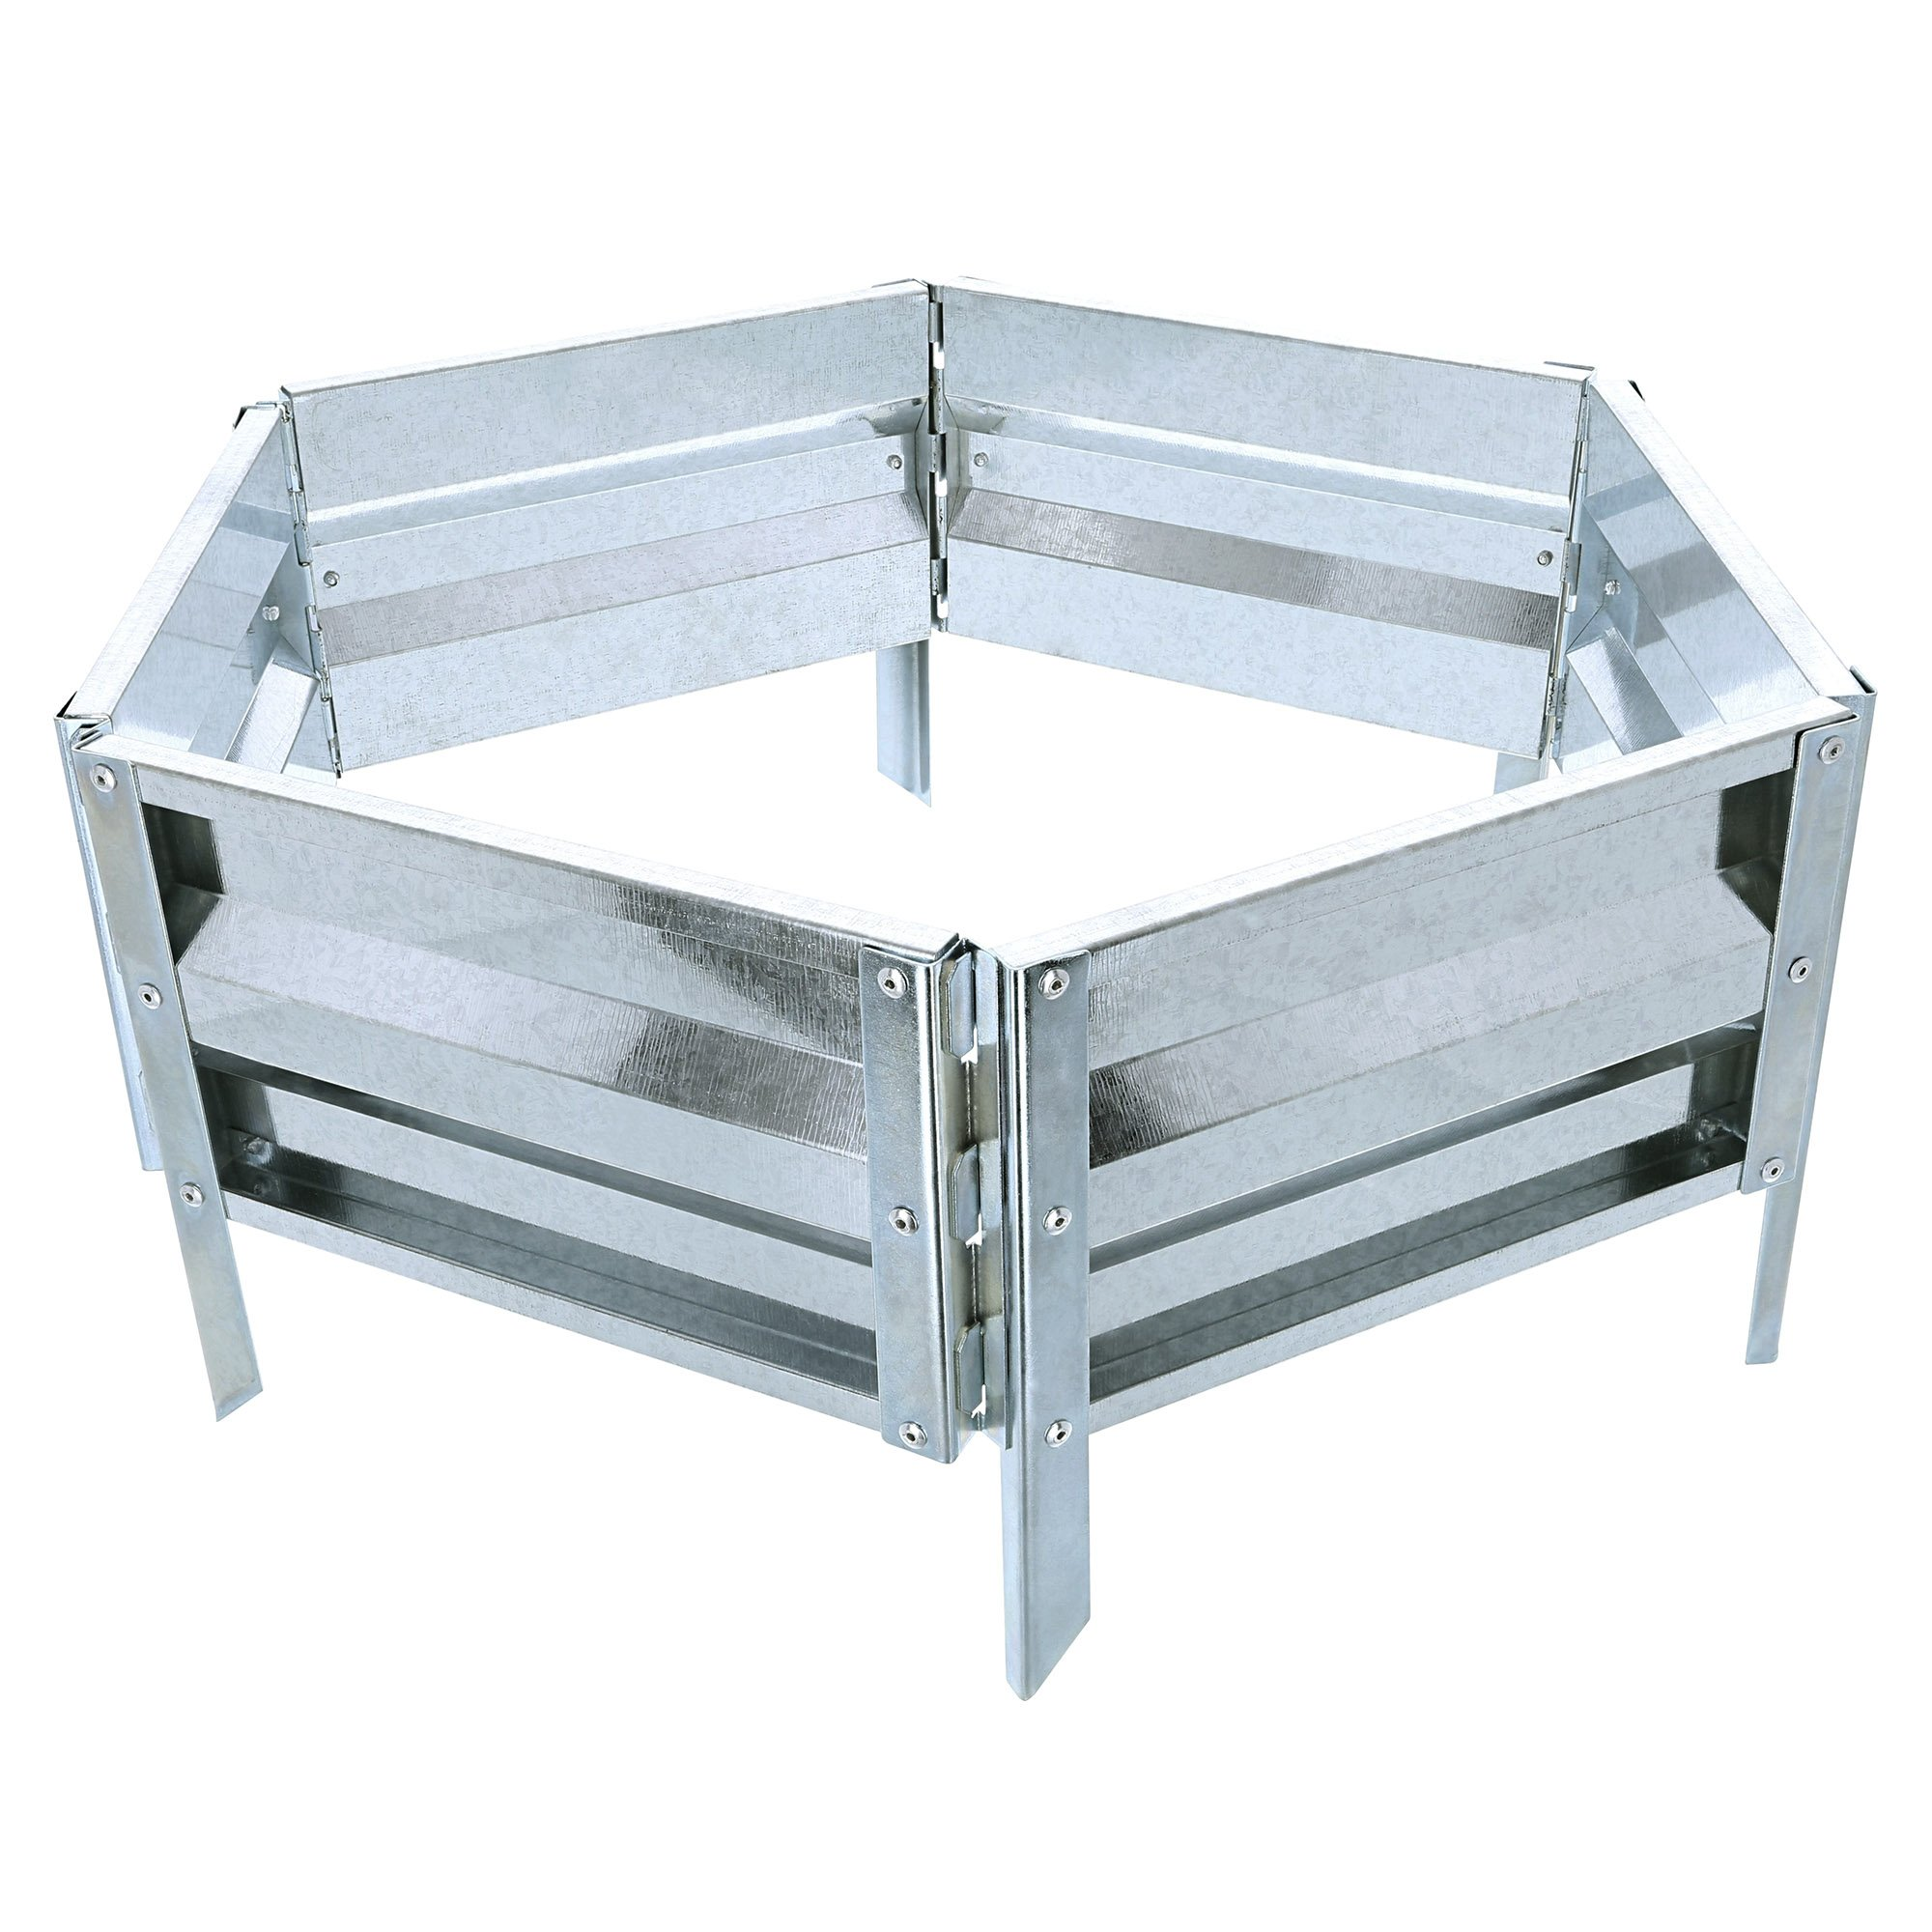 "Pure Garden (PURNC) 50-193 Raised Garden Bed and Plant Holder Kit, 21"" L x 9.75"" W x 5.5"" H"